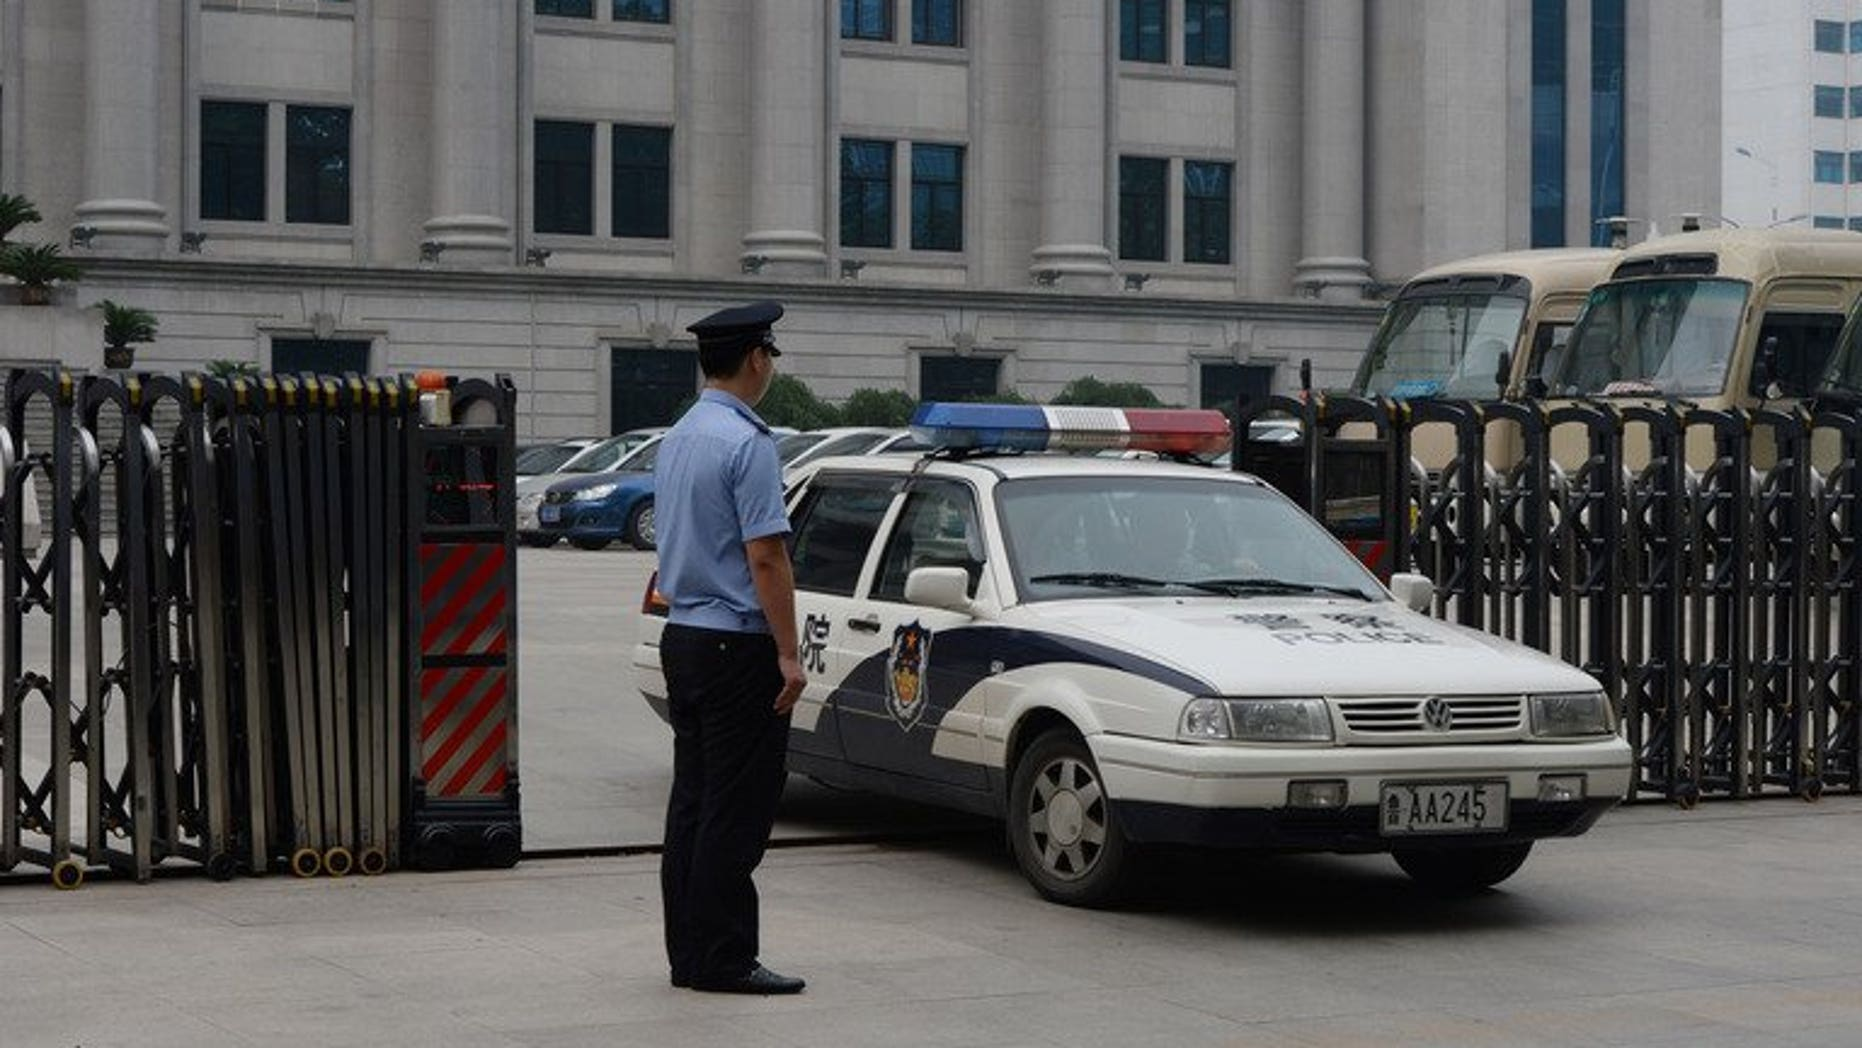 Police leave the Intermediate People's Court in Jinan, Shandong Province on July 25, 2013. Chinese police have detained a prominent human rights activist, signalling the continuation of a recent crackdown on dissent, an advocacy group said on Saturday.